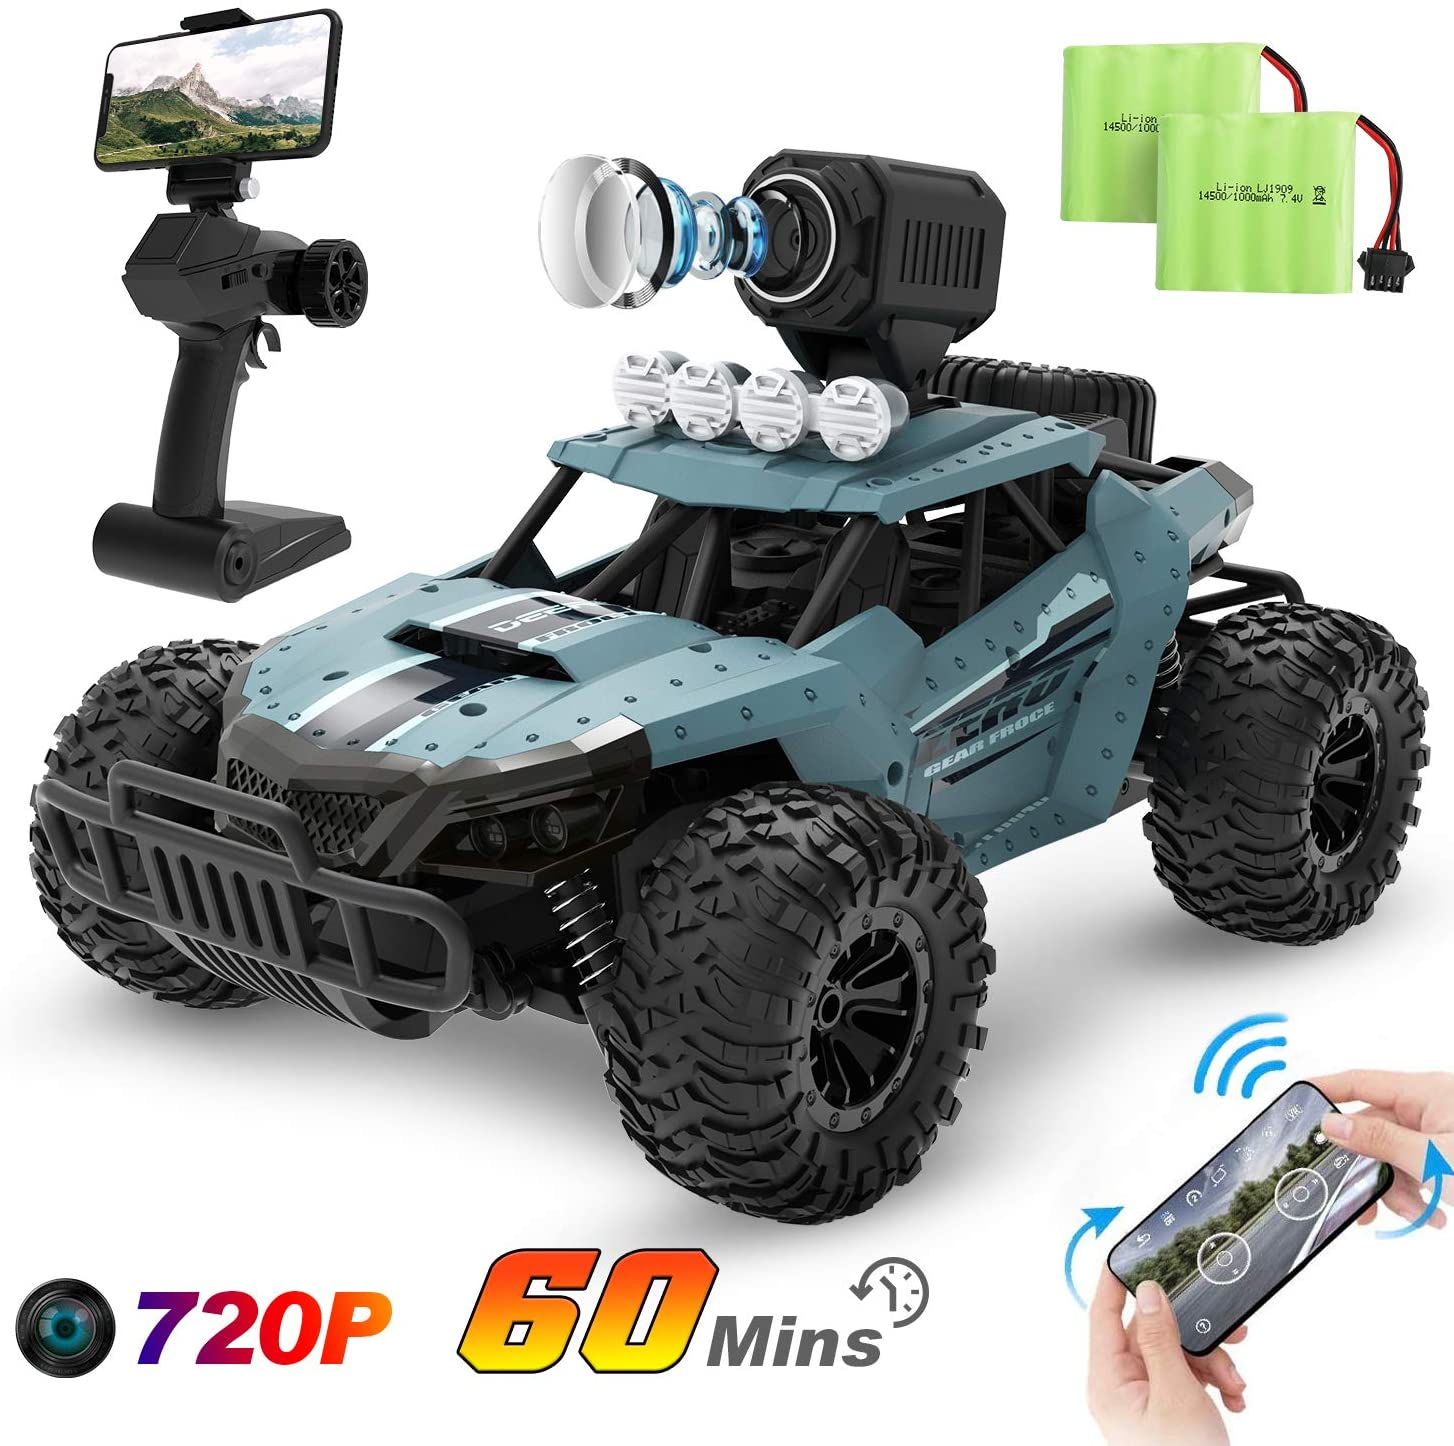 Deerc Rc Cars De36w Remote Control Car With 720p Hd Fpv Camera 1 16 Scale Off Road Remote Control Truck High Speed Monster Trucks For Kids Adults 2 Batteries For 60 Min Play Gift